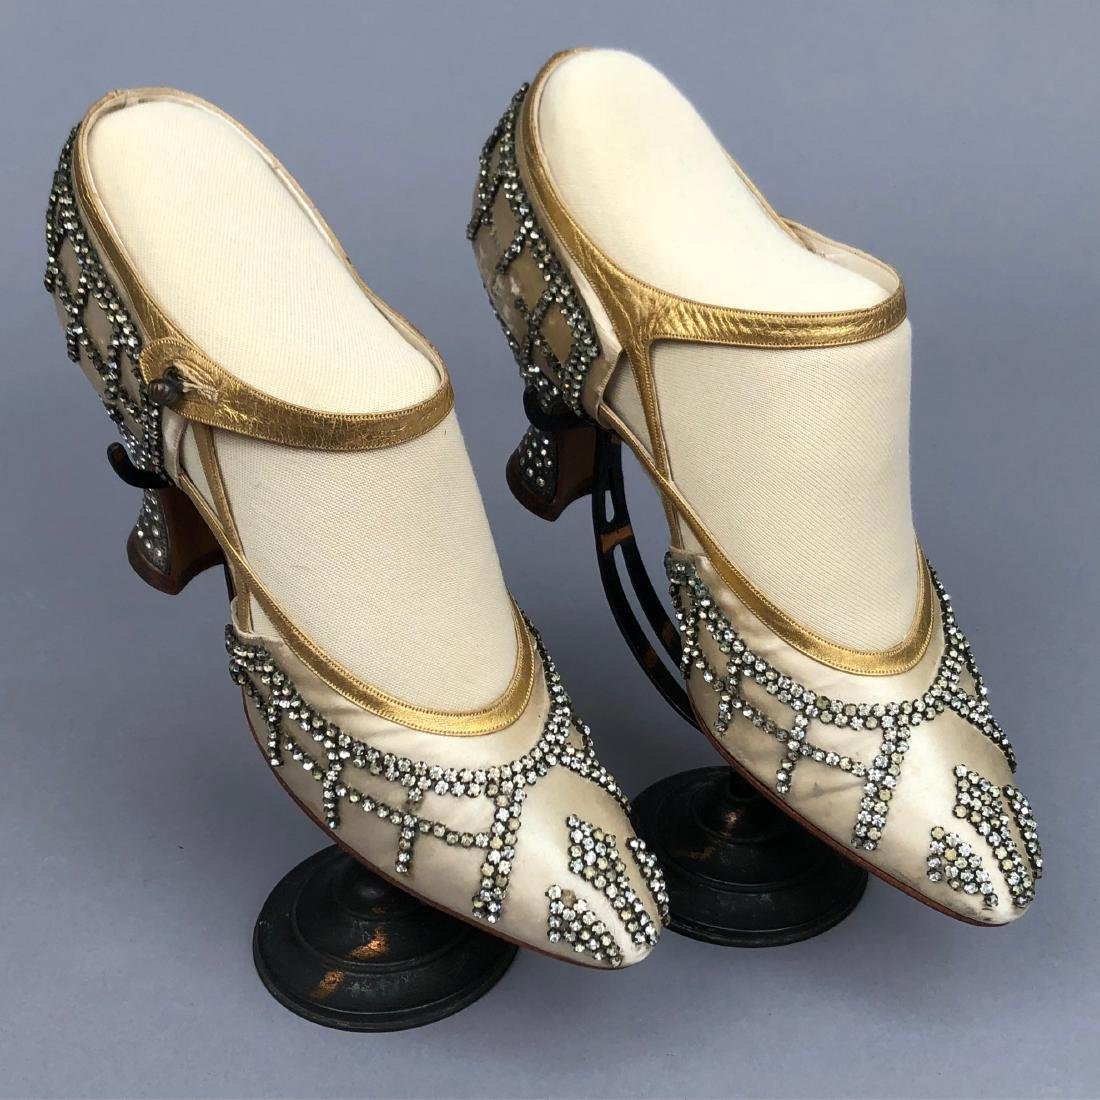 GRECO GOLD and RHINESTONE TRIMMED SATIN PUMPS, 1925 -